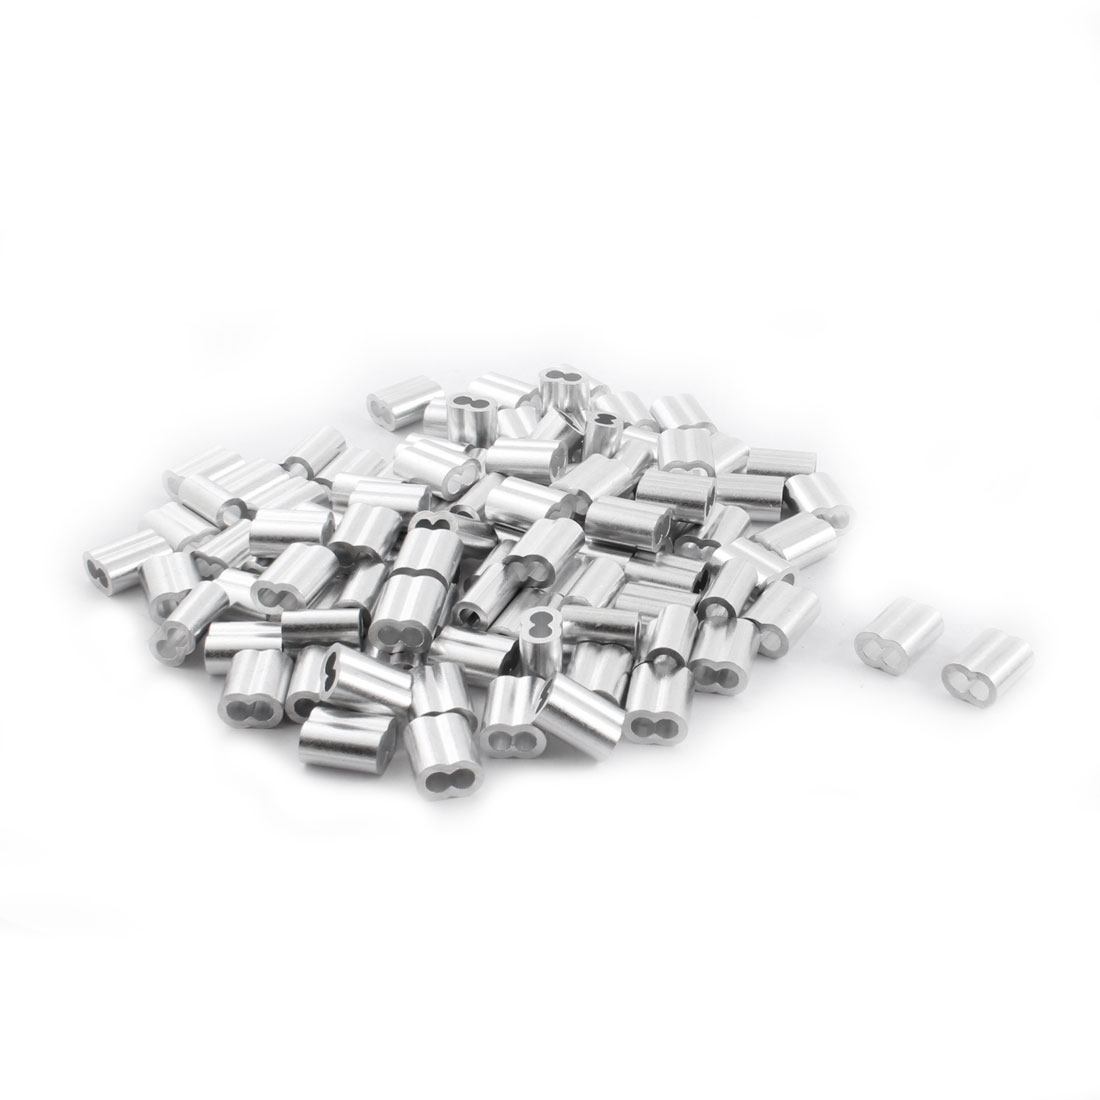 "100Pcs 1/4""x 5/8"" Aluminum Hourglass Ferrules Sleeve Crimp for 4mm Wire Rope"